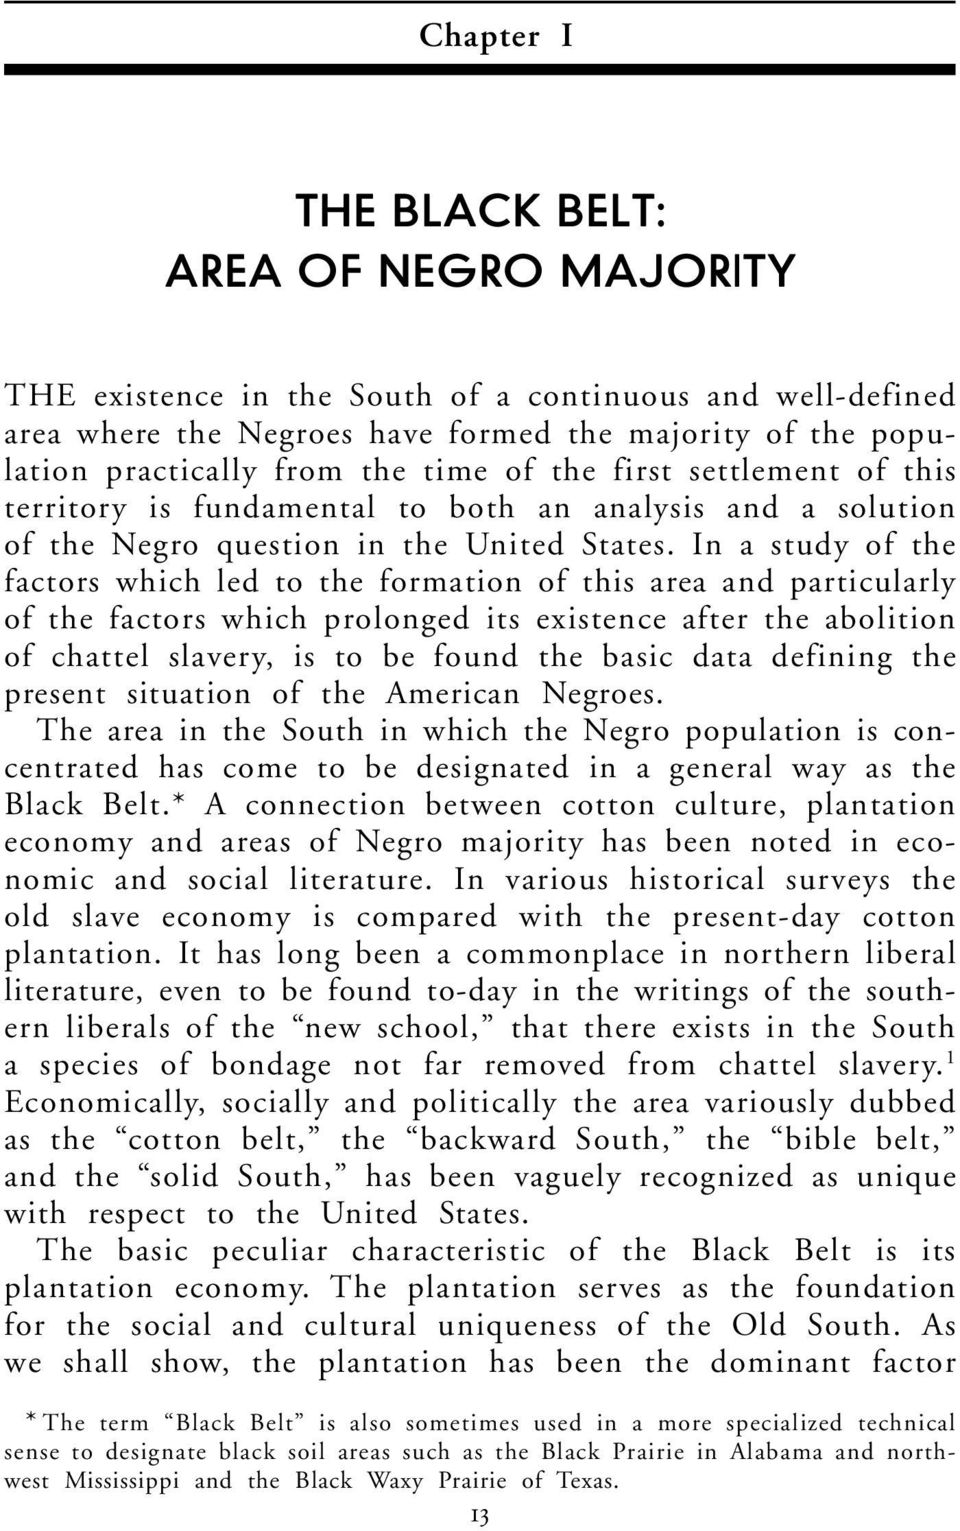 In a study of the factors which led to the formation of this area and particularly of the factors which prolonged its existence after the abolition of chattel slavery, is to be found the basic data